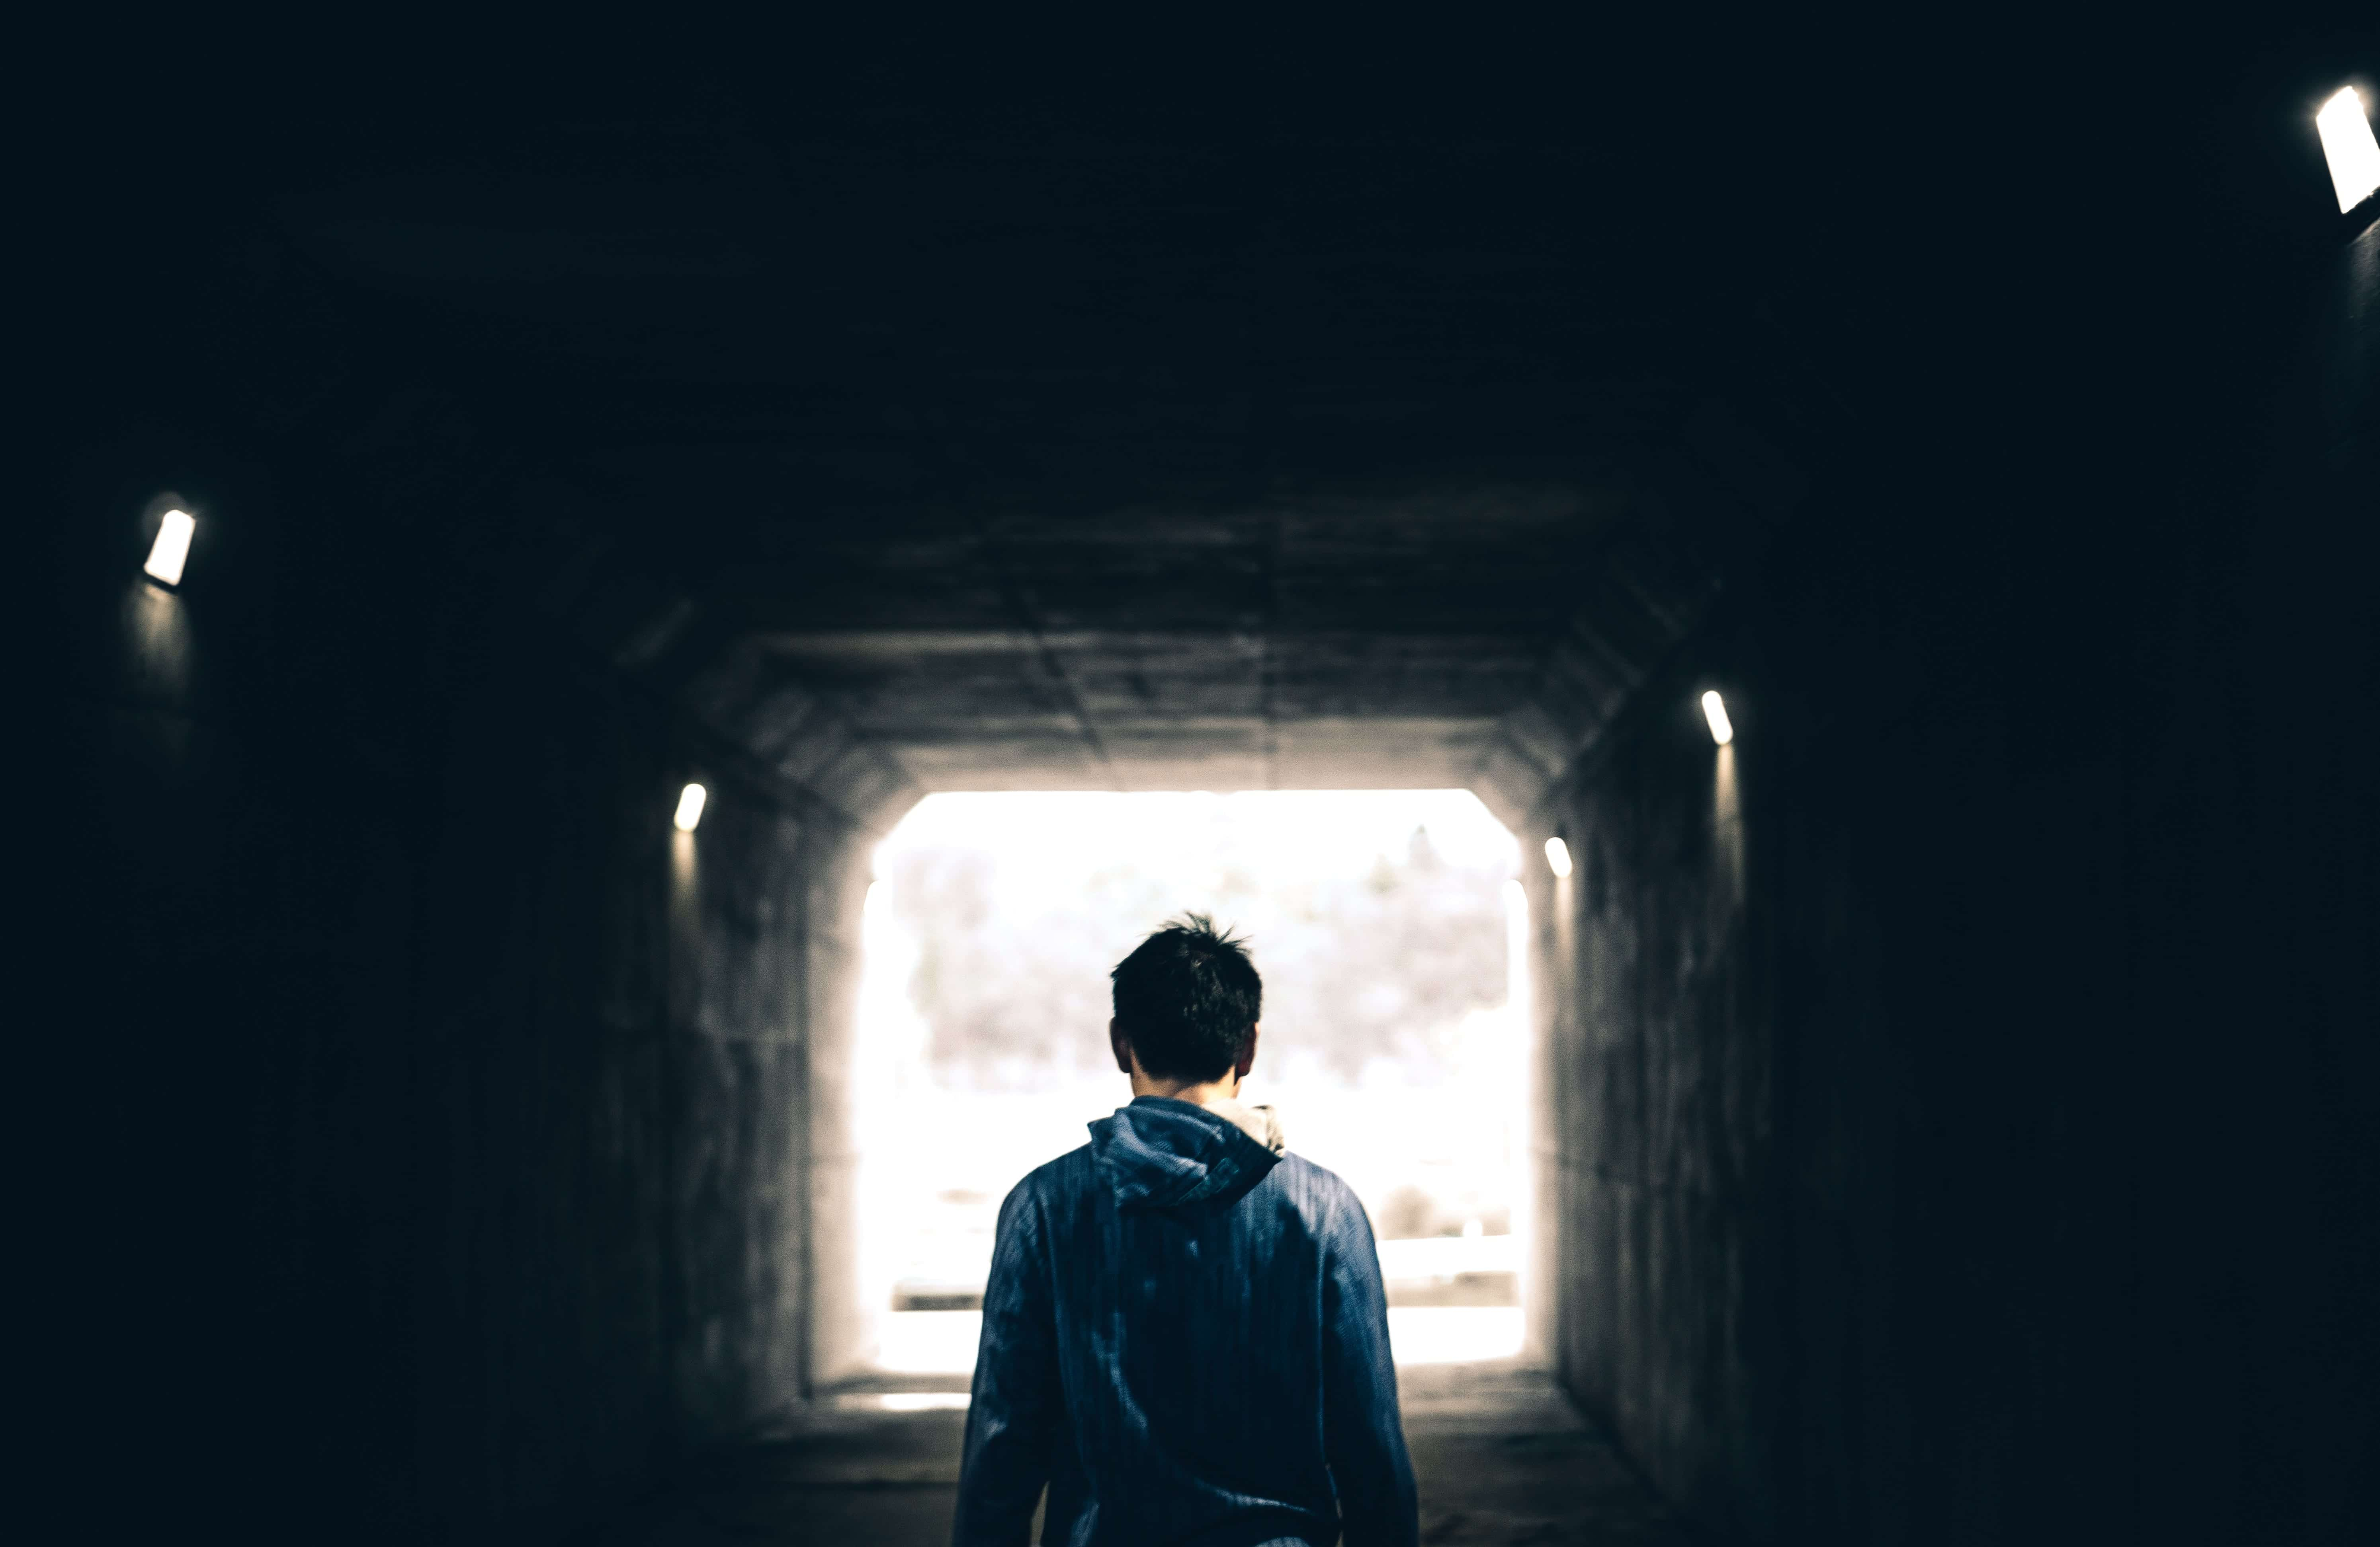 Man walking toward light at the end of a tunnel; image by Warren Wong, via Unsplash.com.